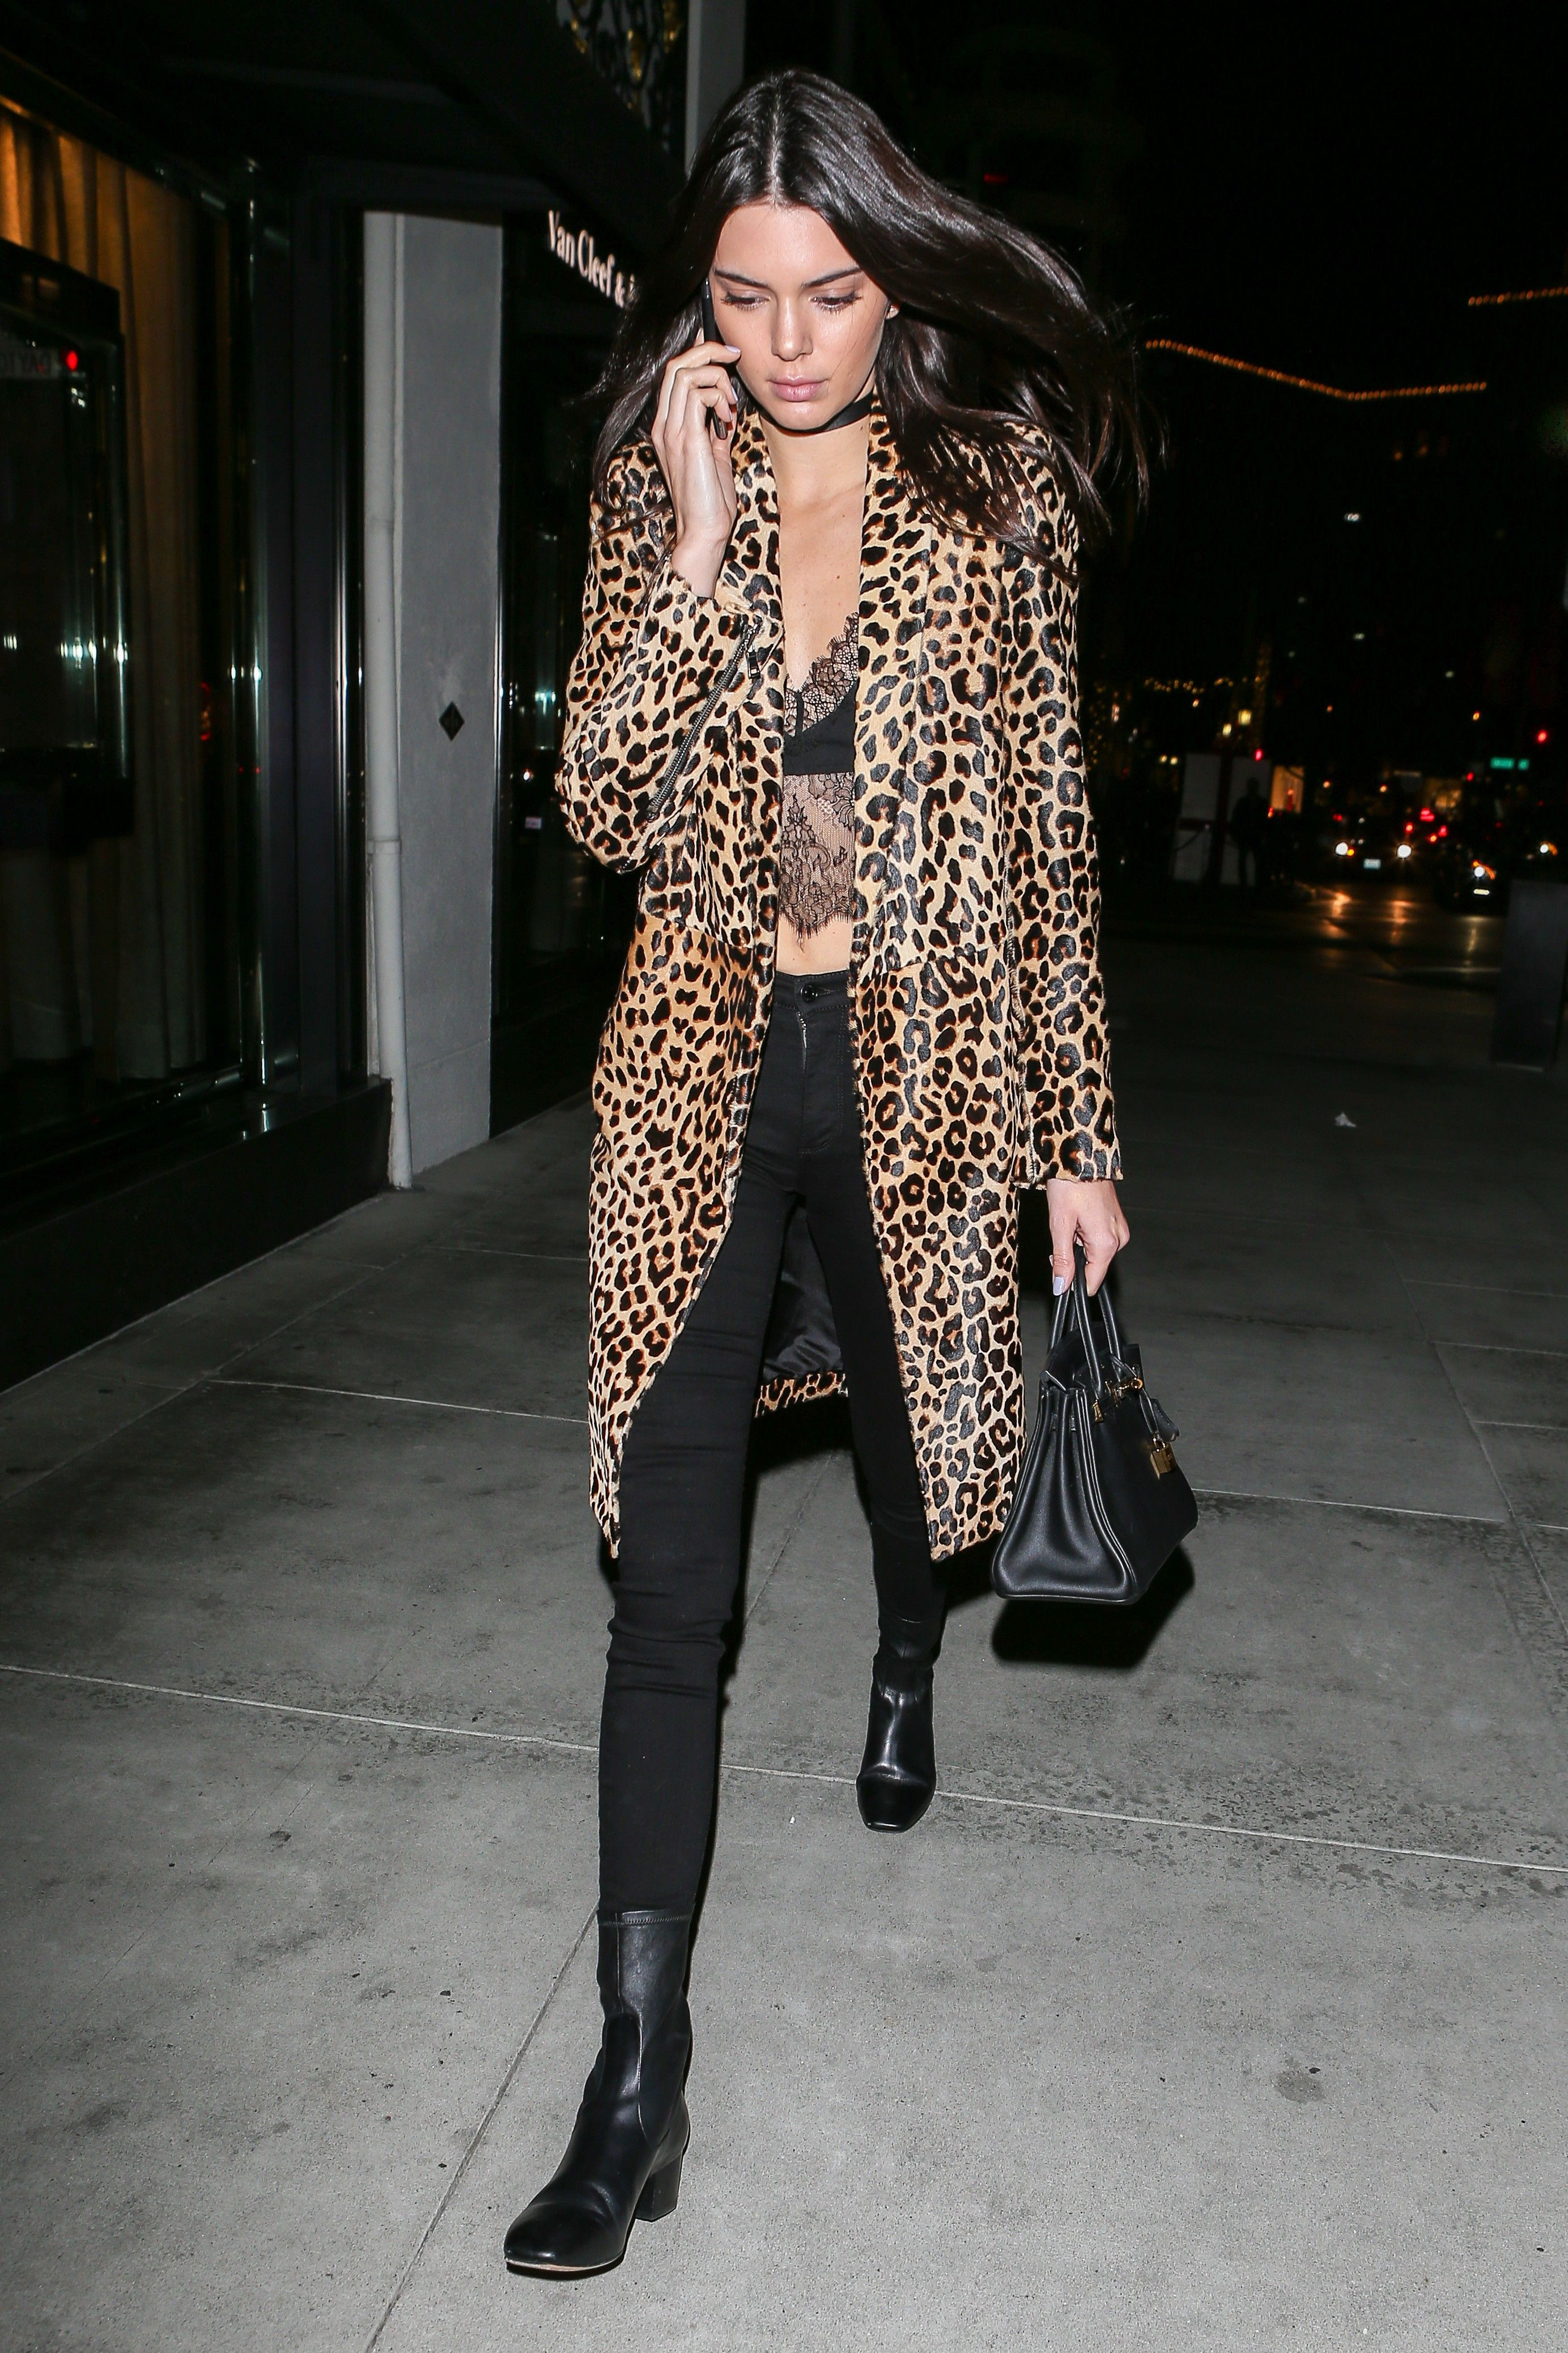 b7fba33ffc4c3 The Celebrity Guide to Every Type of Boot You Need This Winter